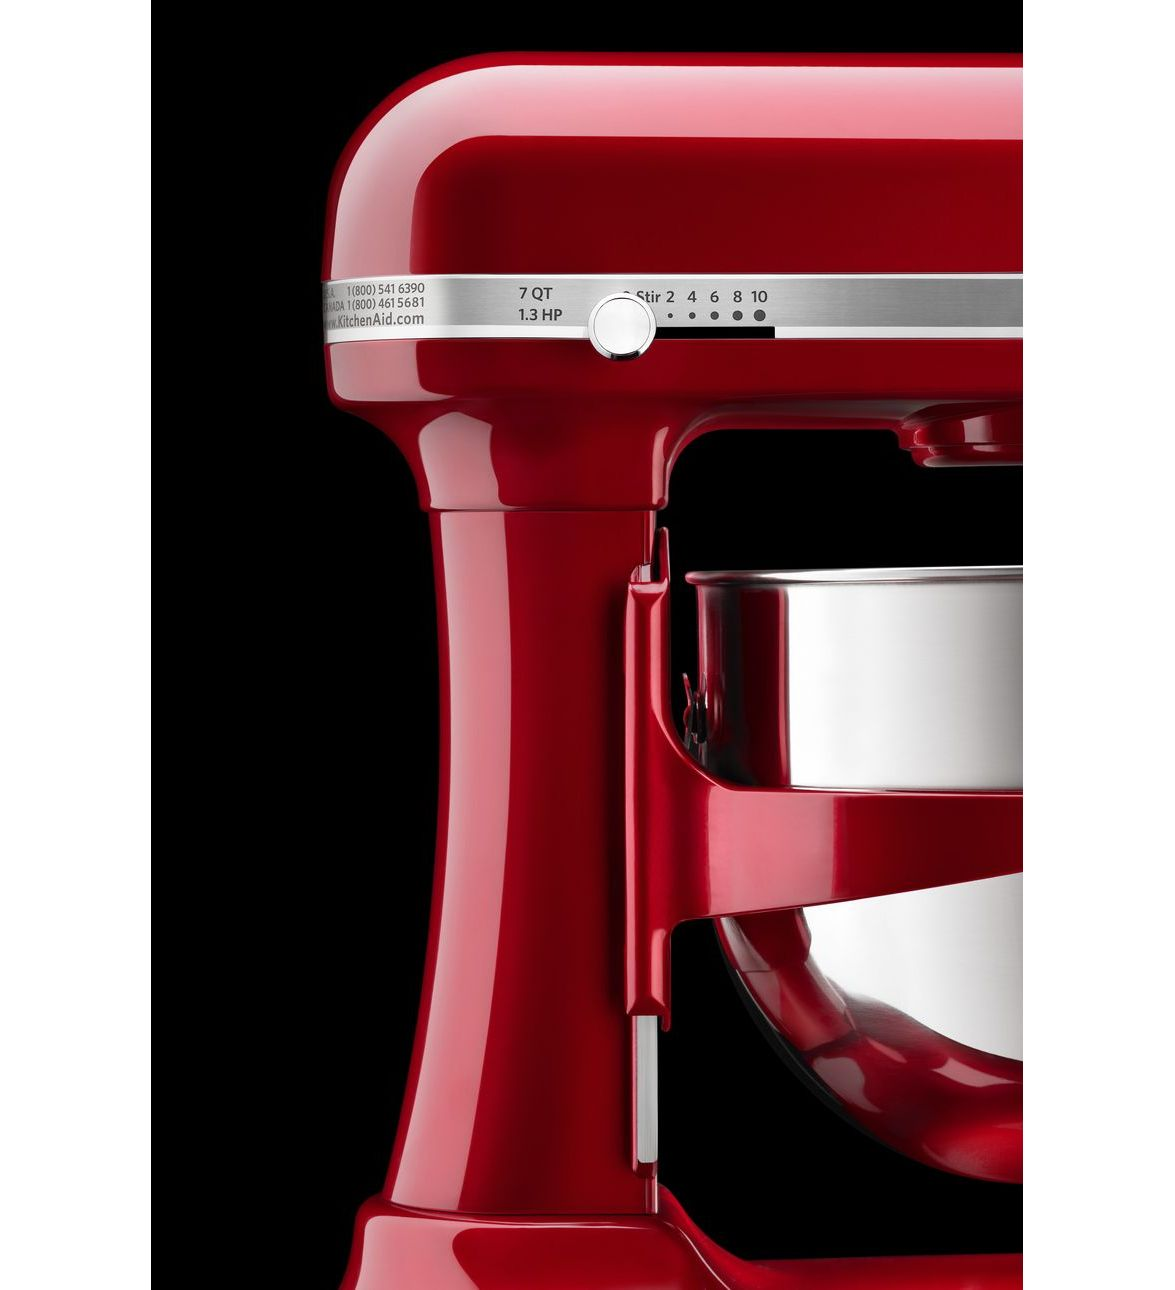 Kitchenaid Pro Line 174 7 Qt Stand Mixer Candy Apple Red